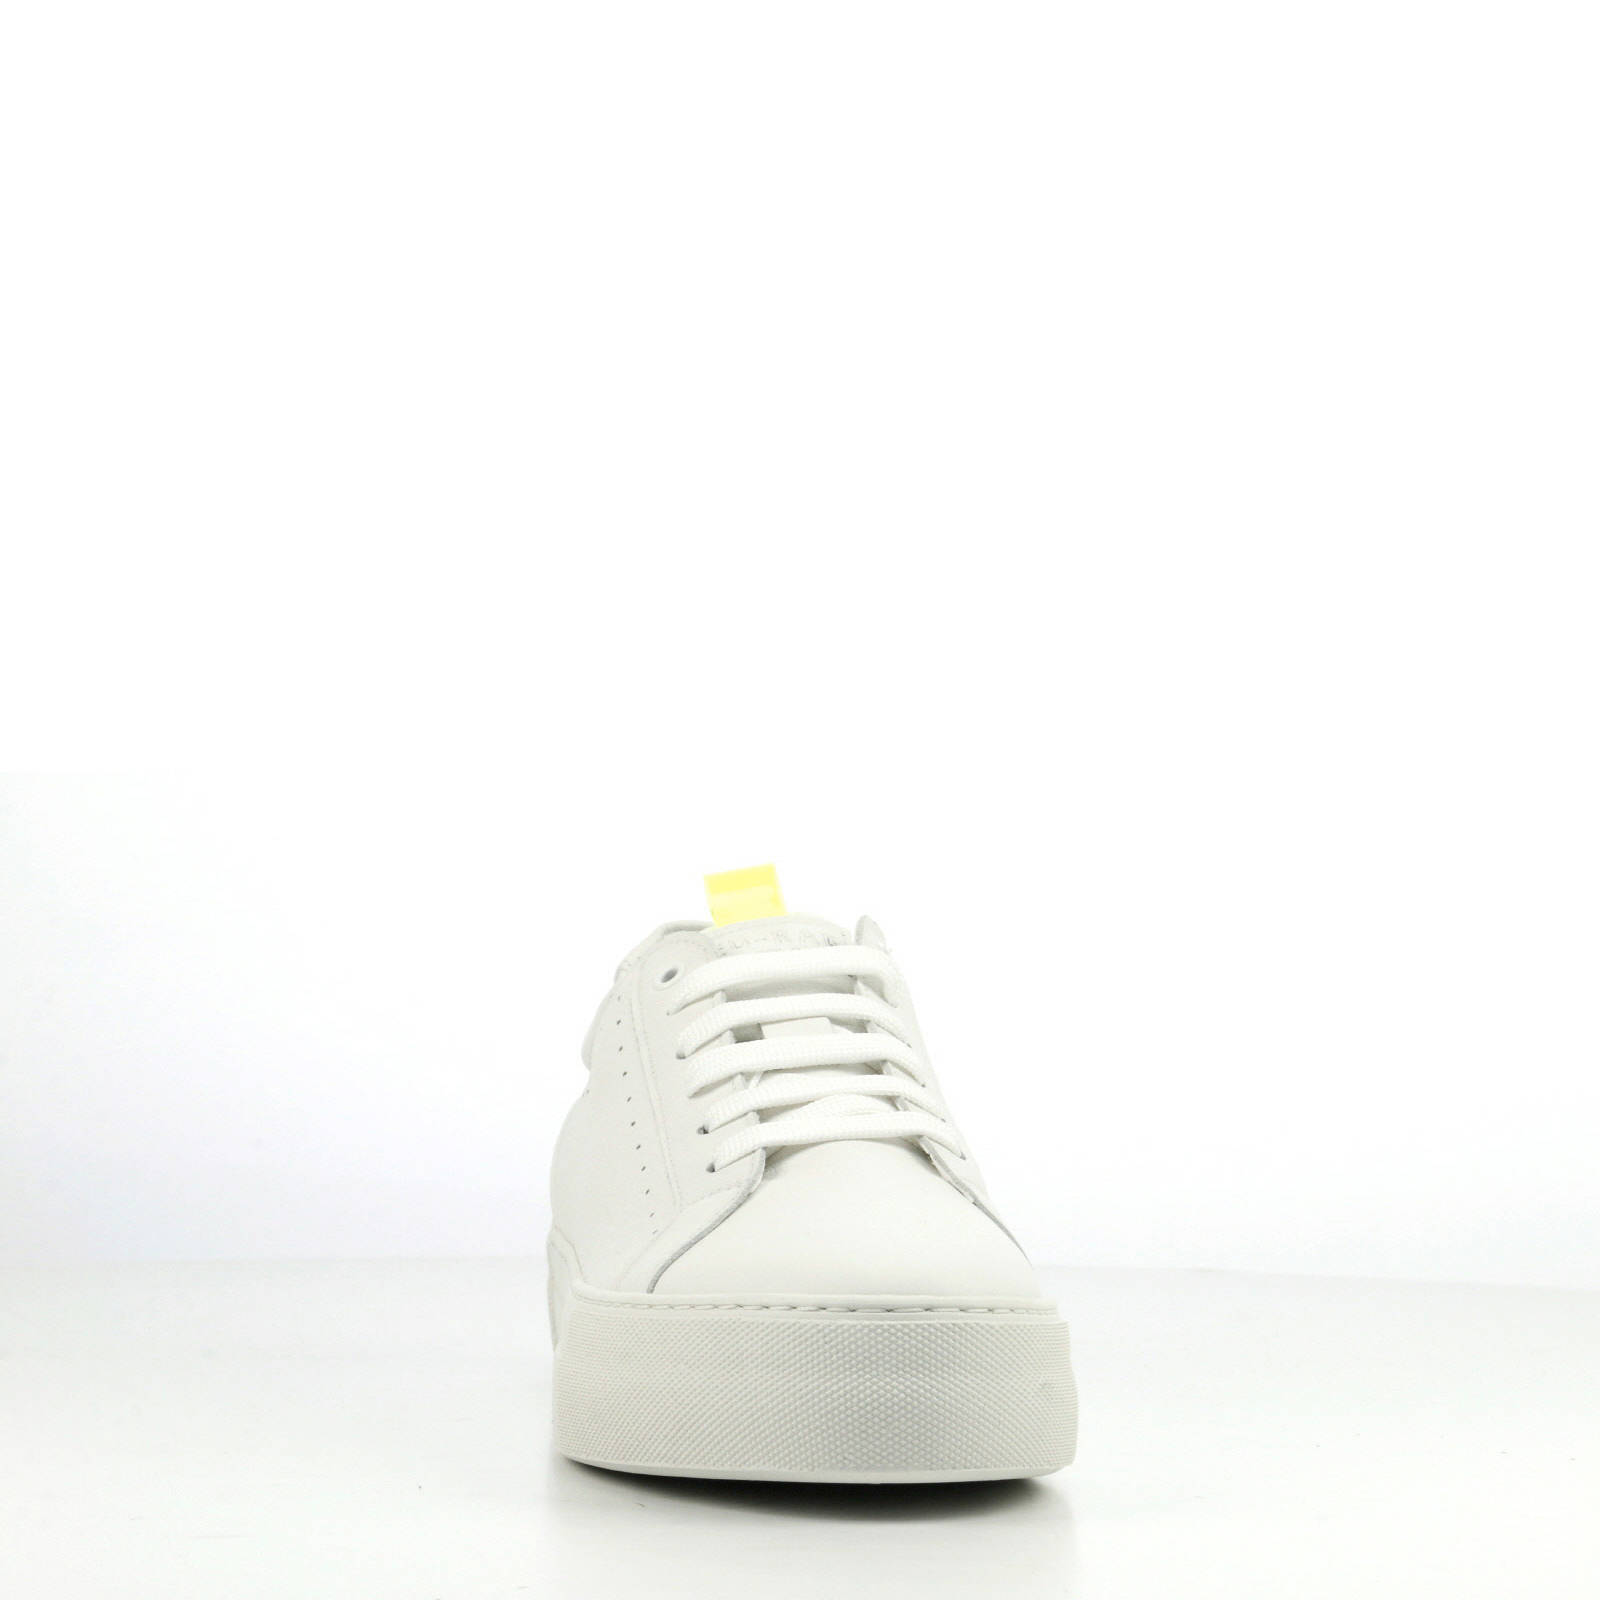 Rag Wit Leren Sneakers Red Plateau mnO80yvNw